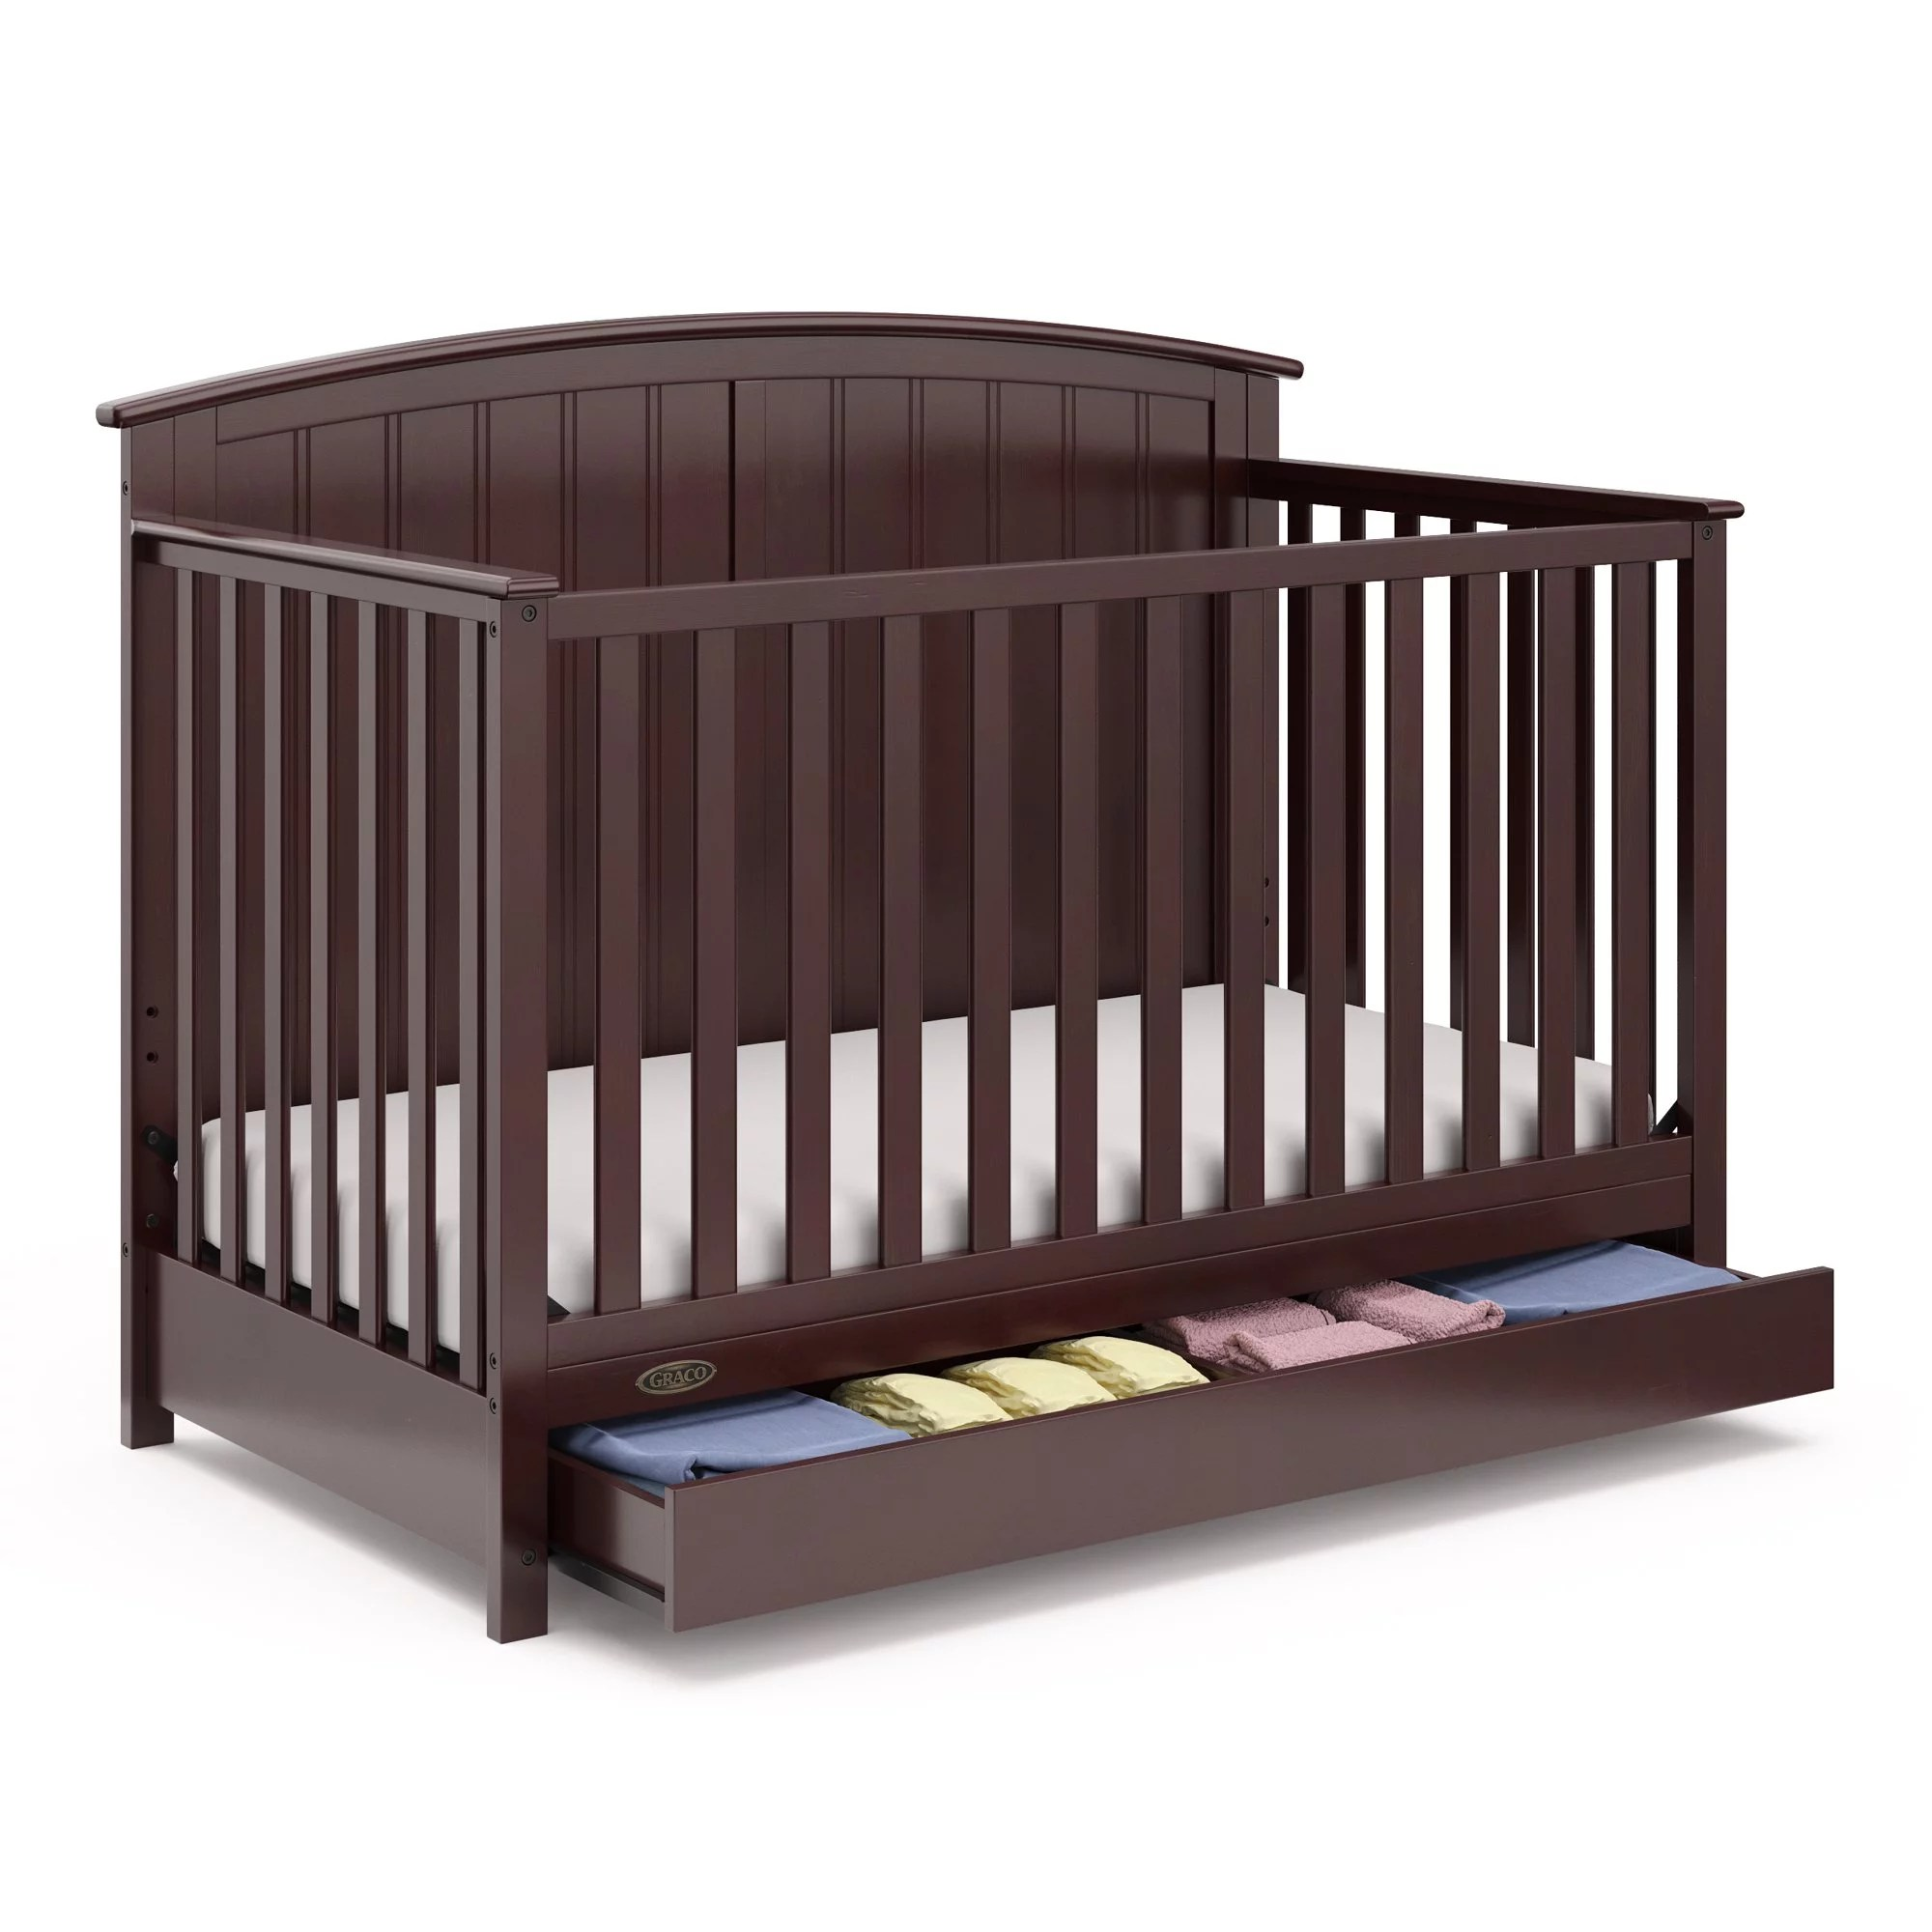 Baby Cradle Graco Graco Jasper 4 In 1 Convertible Crib With Drawer Walmart S